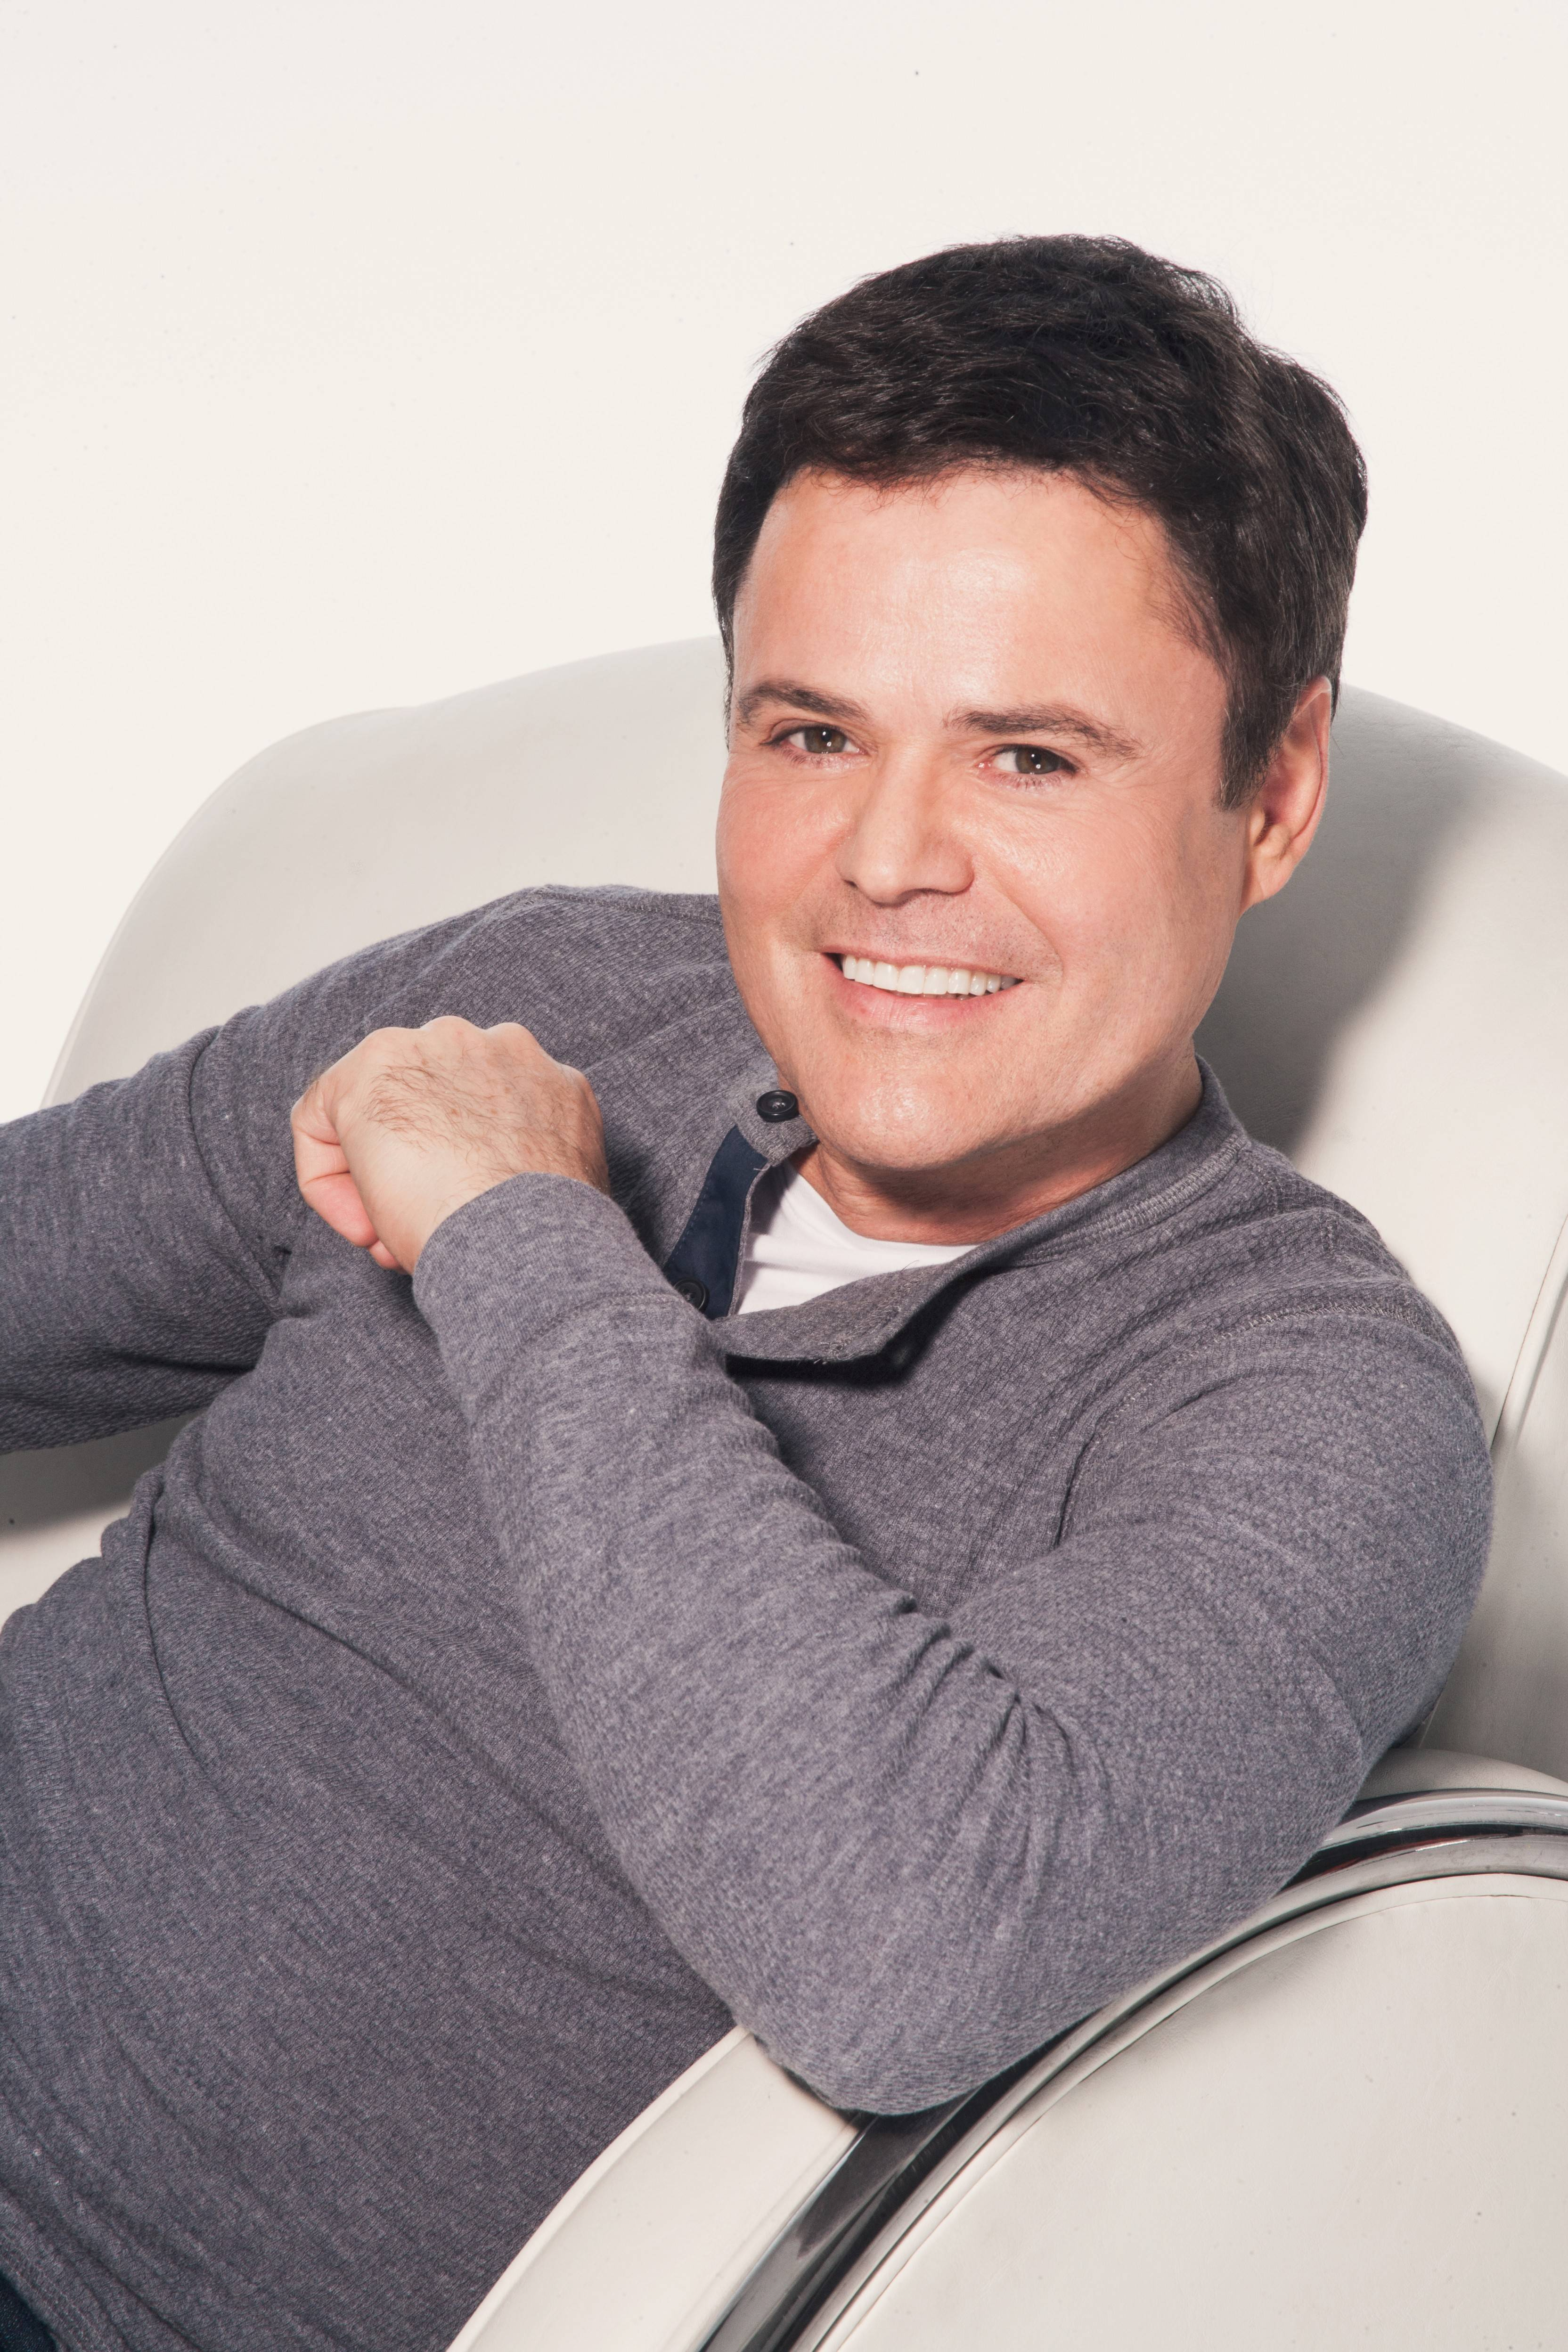 Donny Osmond's talents, appeal cross generations